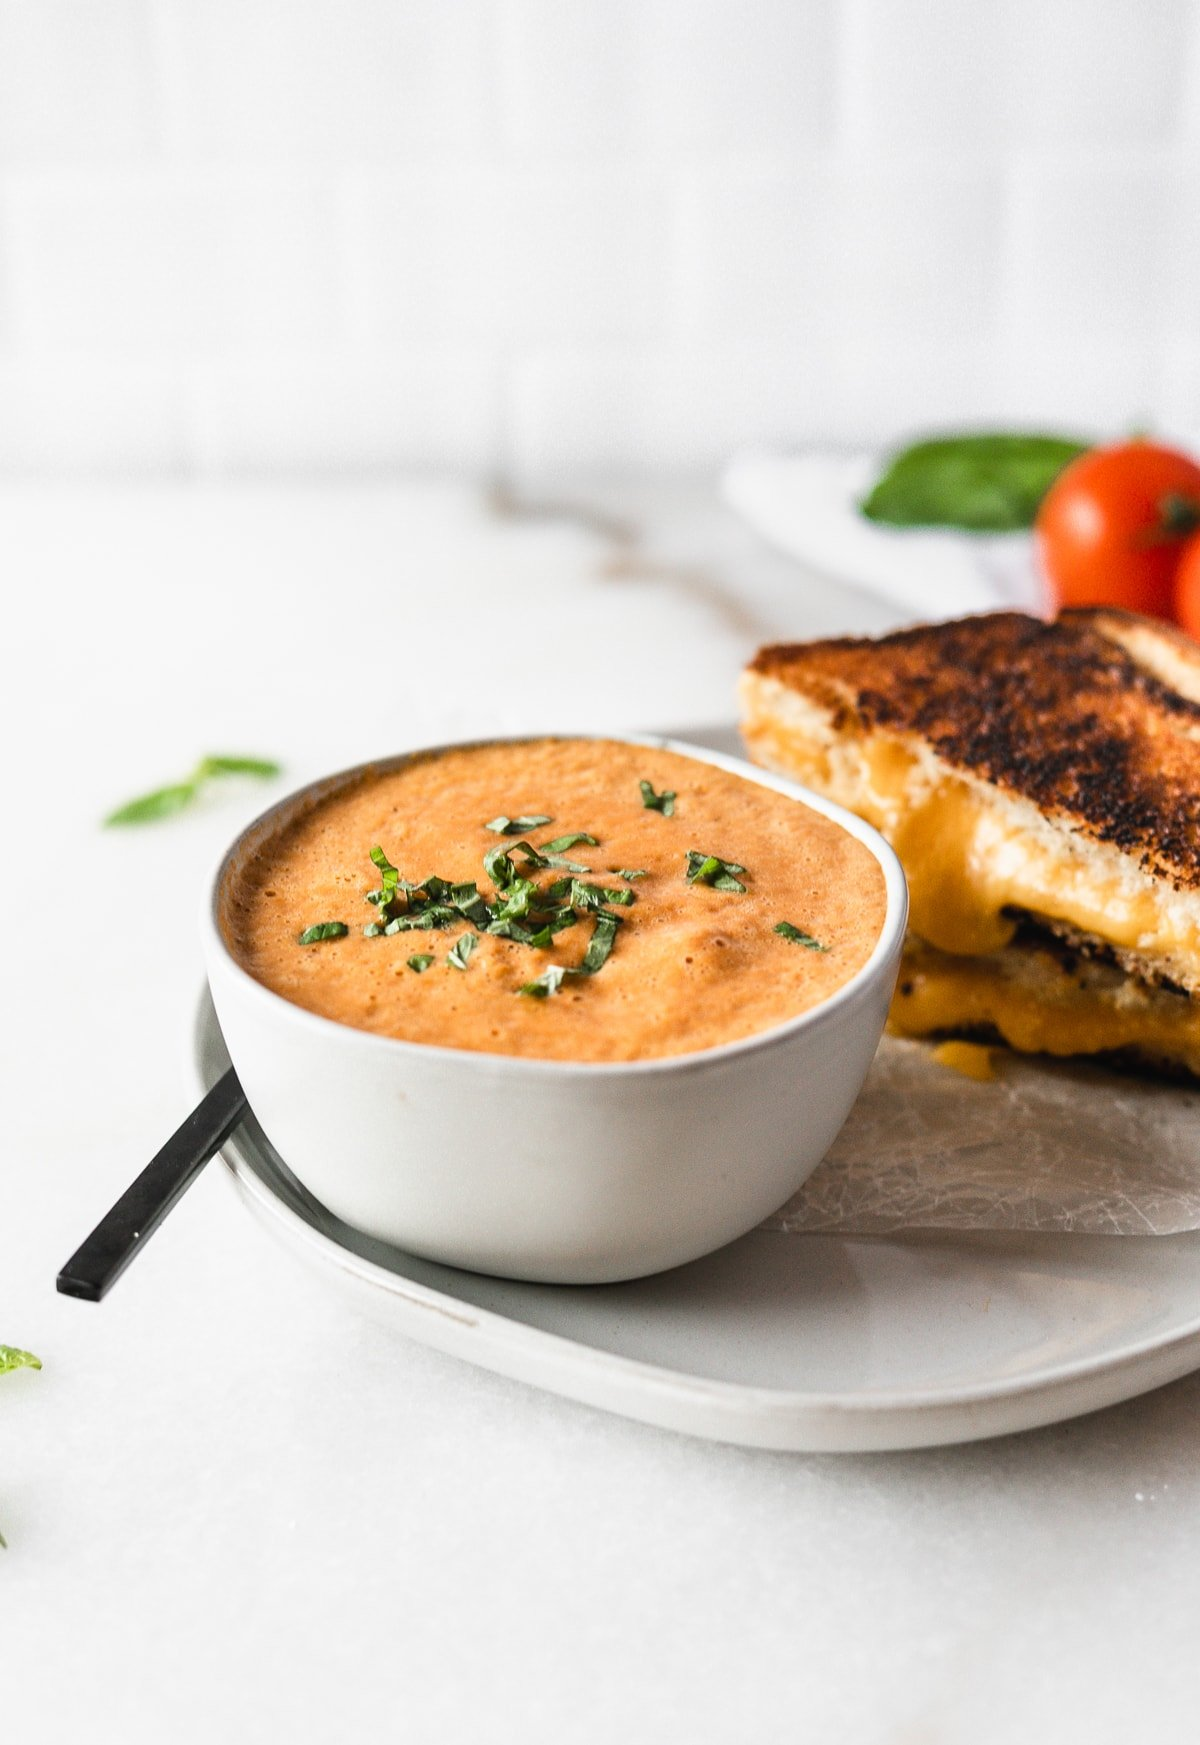 The easiest tomato basil soup recipe made from simple ingredients you already have in your pantry! You're only 7 ingredients from the most delicious tomato soup ever! (gluten-free, vegetarian, vegan option)   via livelytable.com